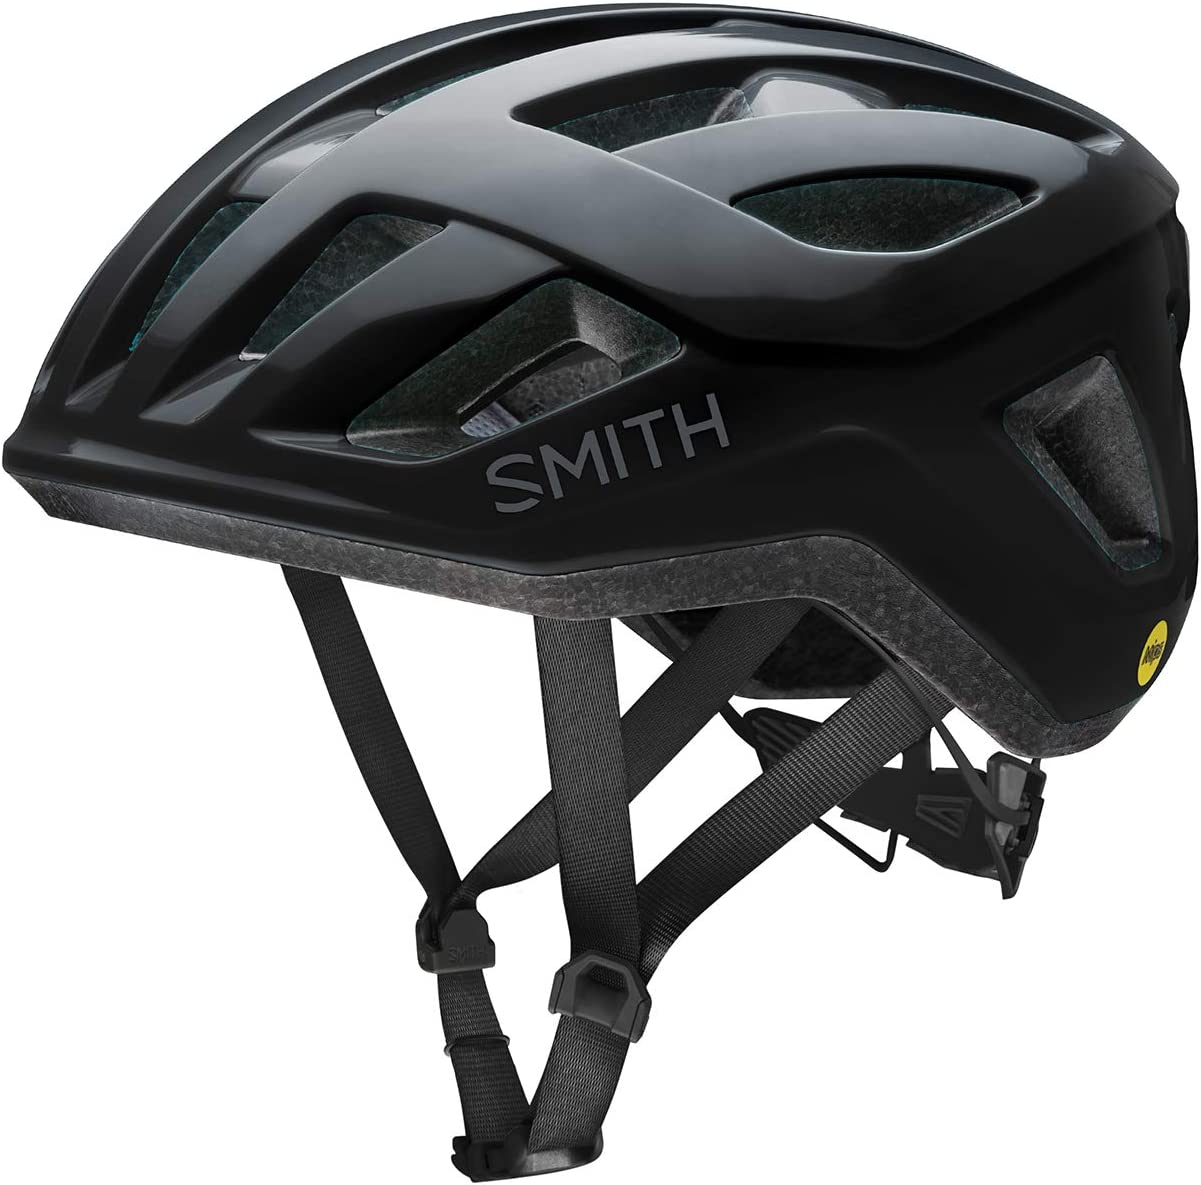 Smith Optics Signal MIPS Men's Cycling Helmet